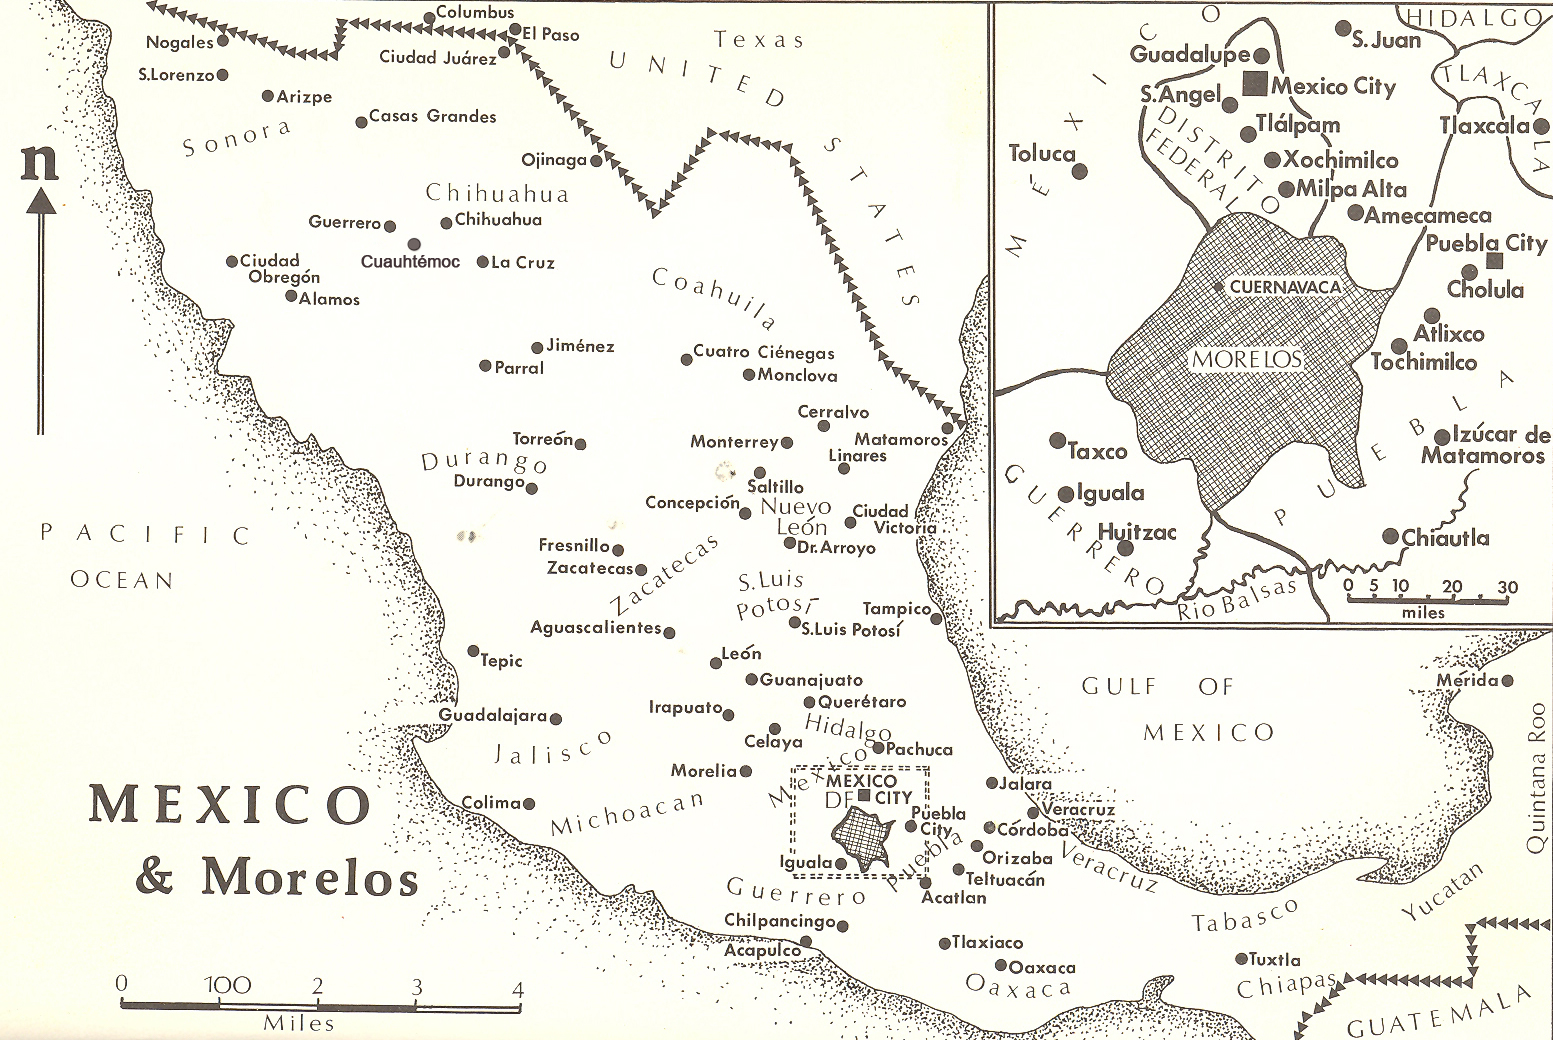 Historical Map of Mexico and the Mexican State (estado) of Morelos, around 1910